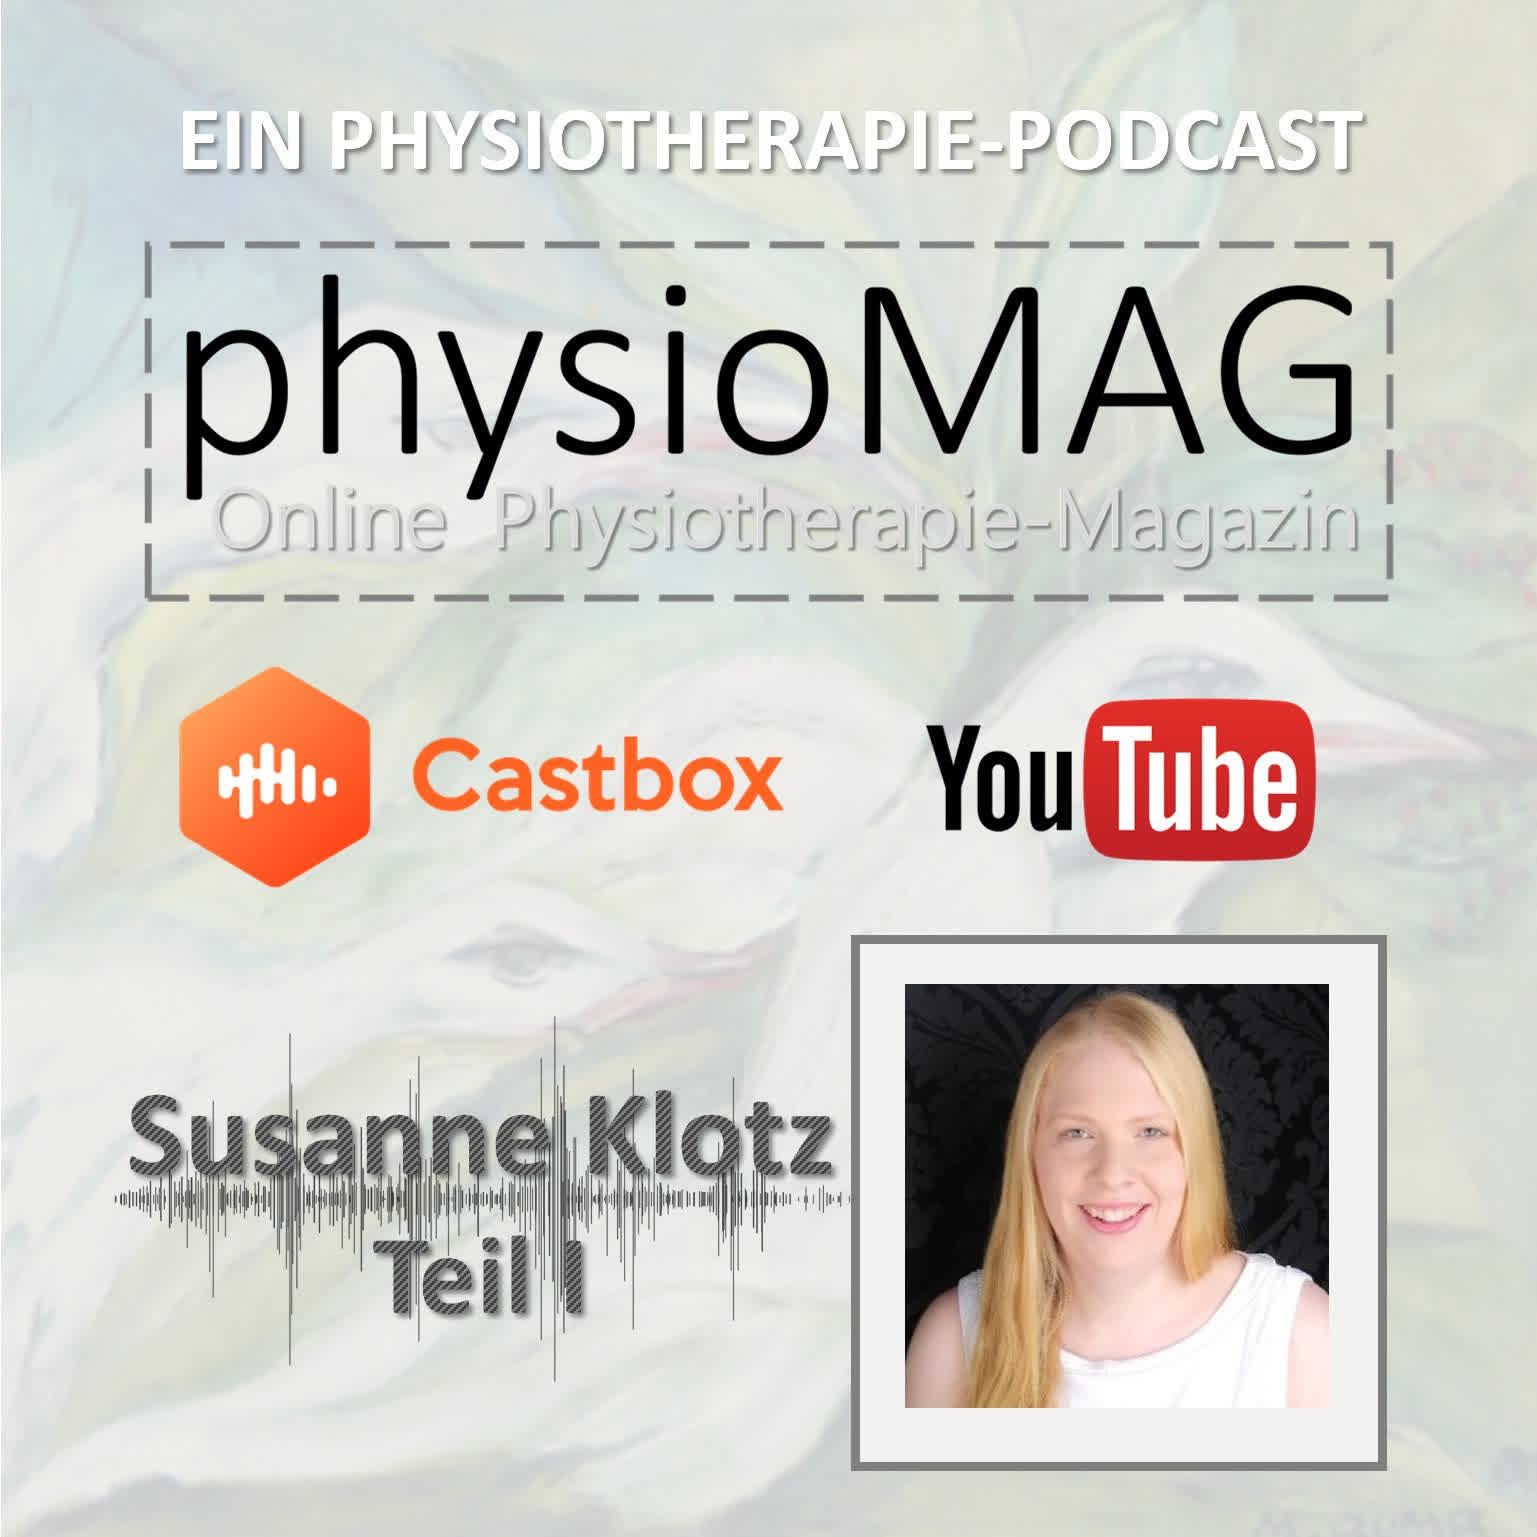 physioMAG Podcast 003 - Susanne Klotz (Teil 1)